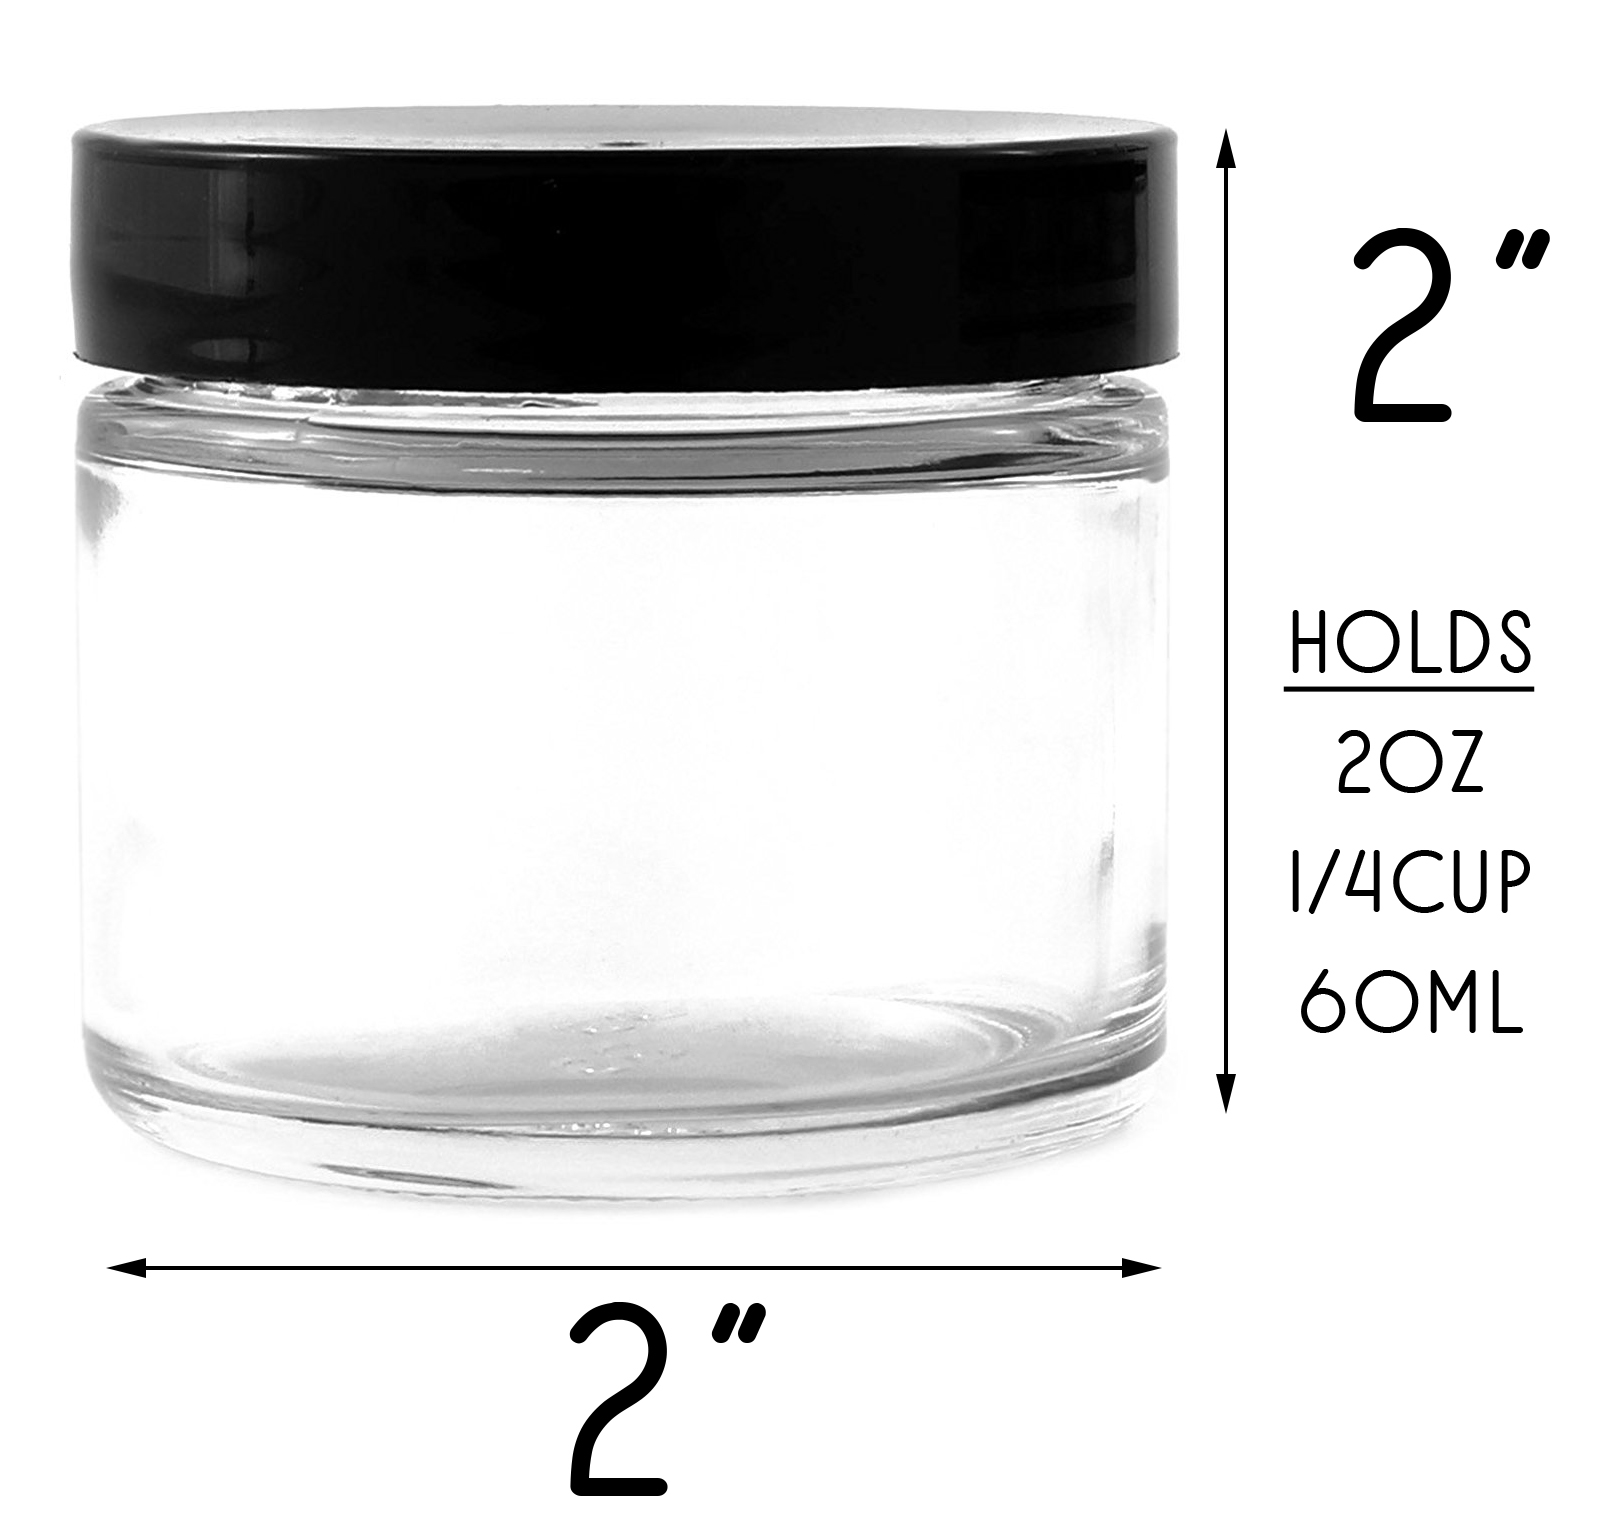 B018SFOZYA - 2oz jars black lids (12pk) - Scale